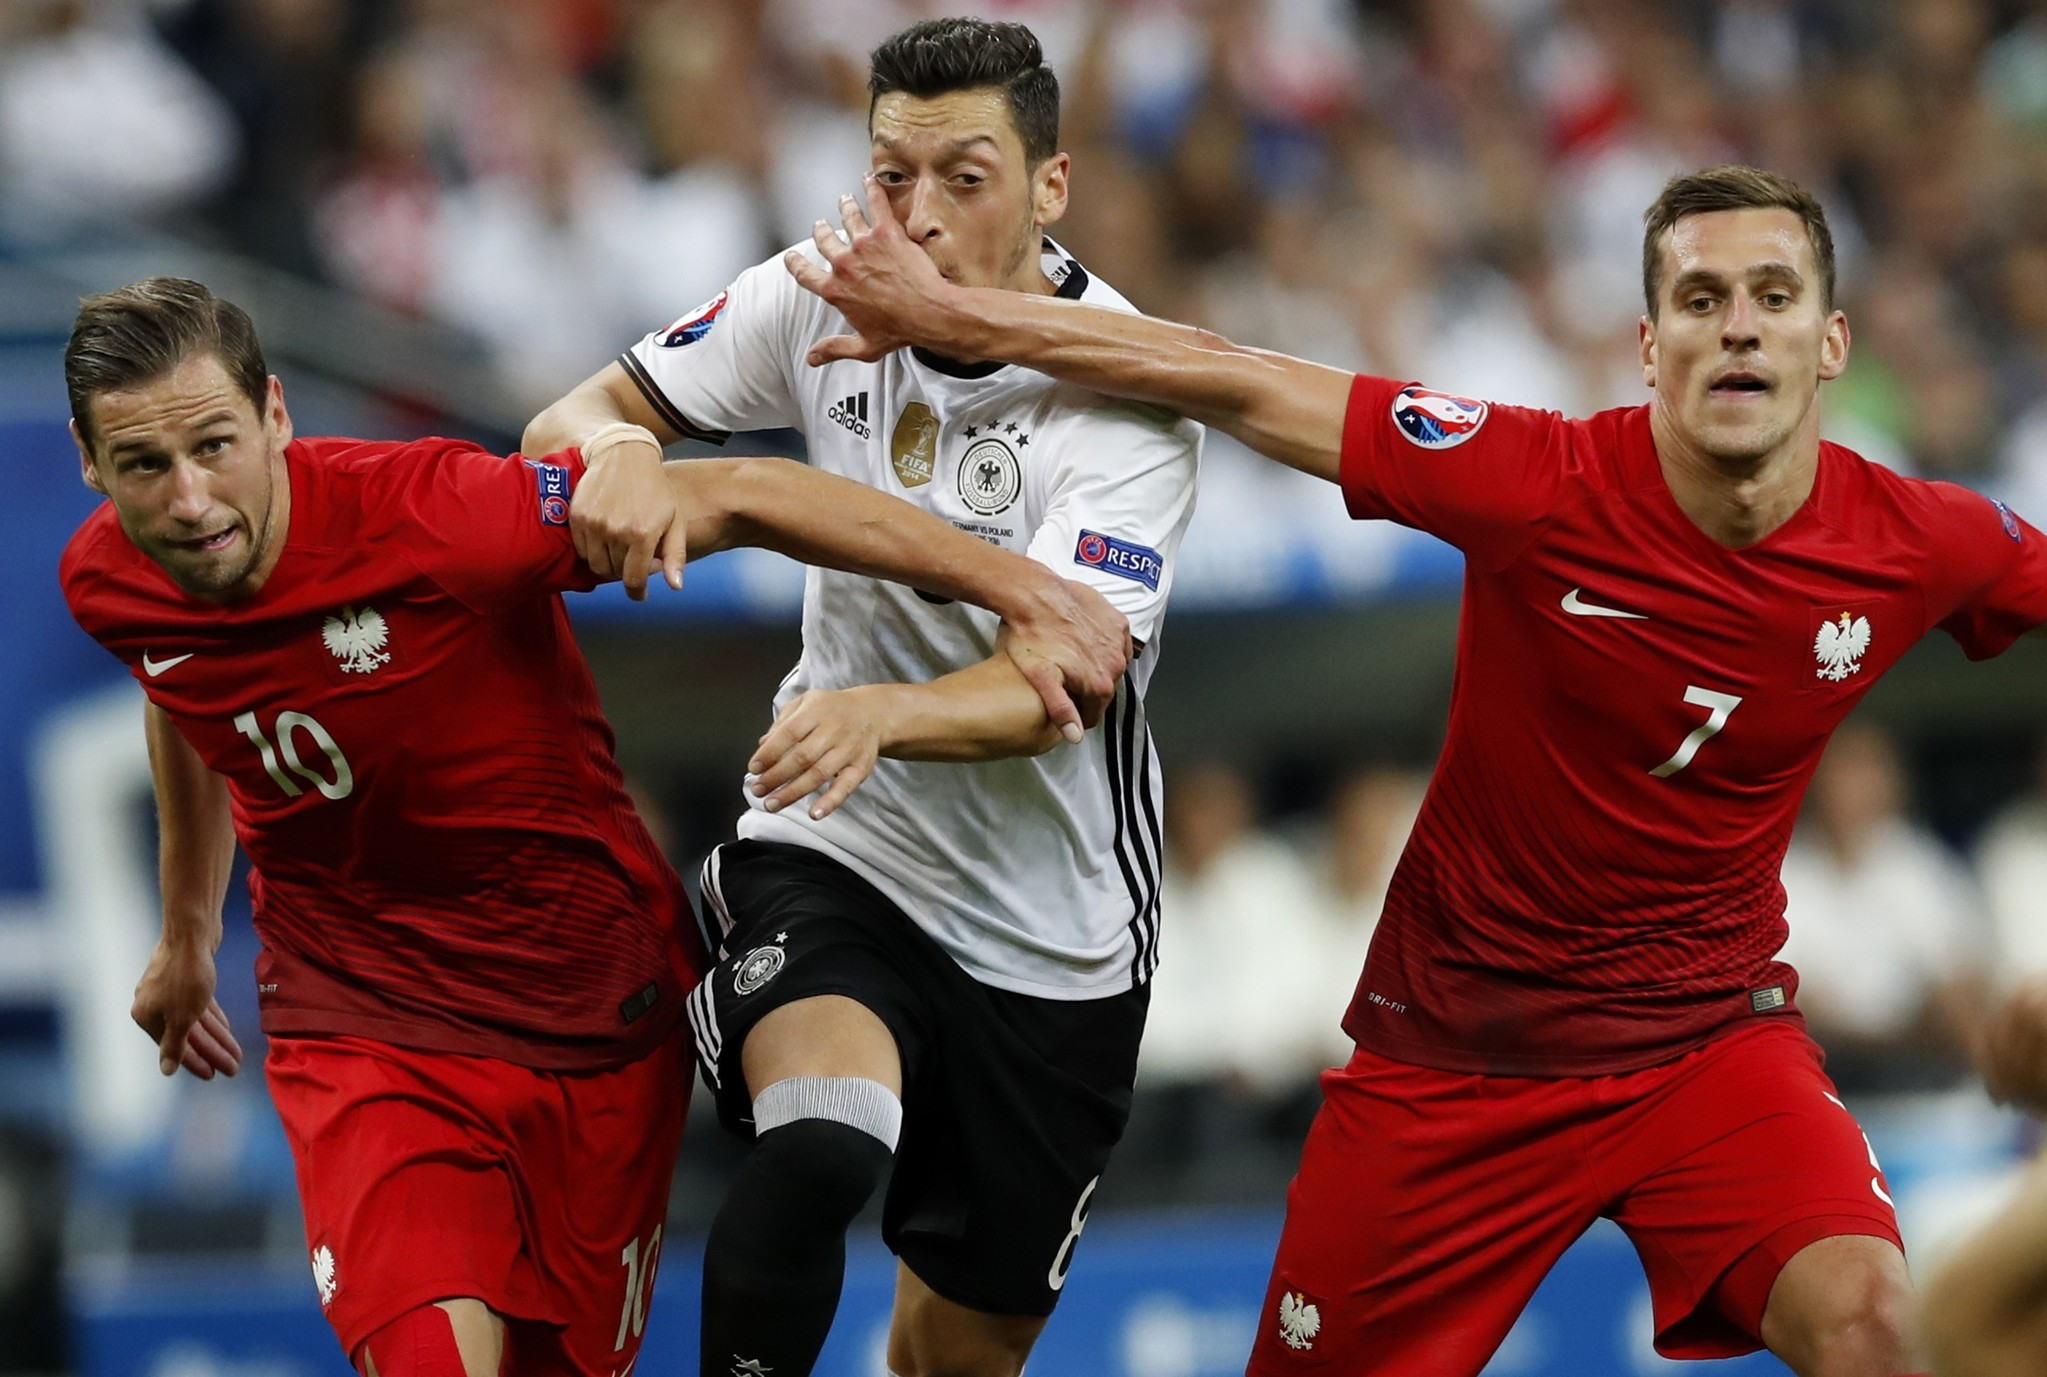 Germany's Mesut Ozil, center, is challenged by Poland's Grzegorz Krychowiak, left, and Poland's Arkadiusz Milik during the Euro 2016 Group C soccer match. (AP Photo)